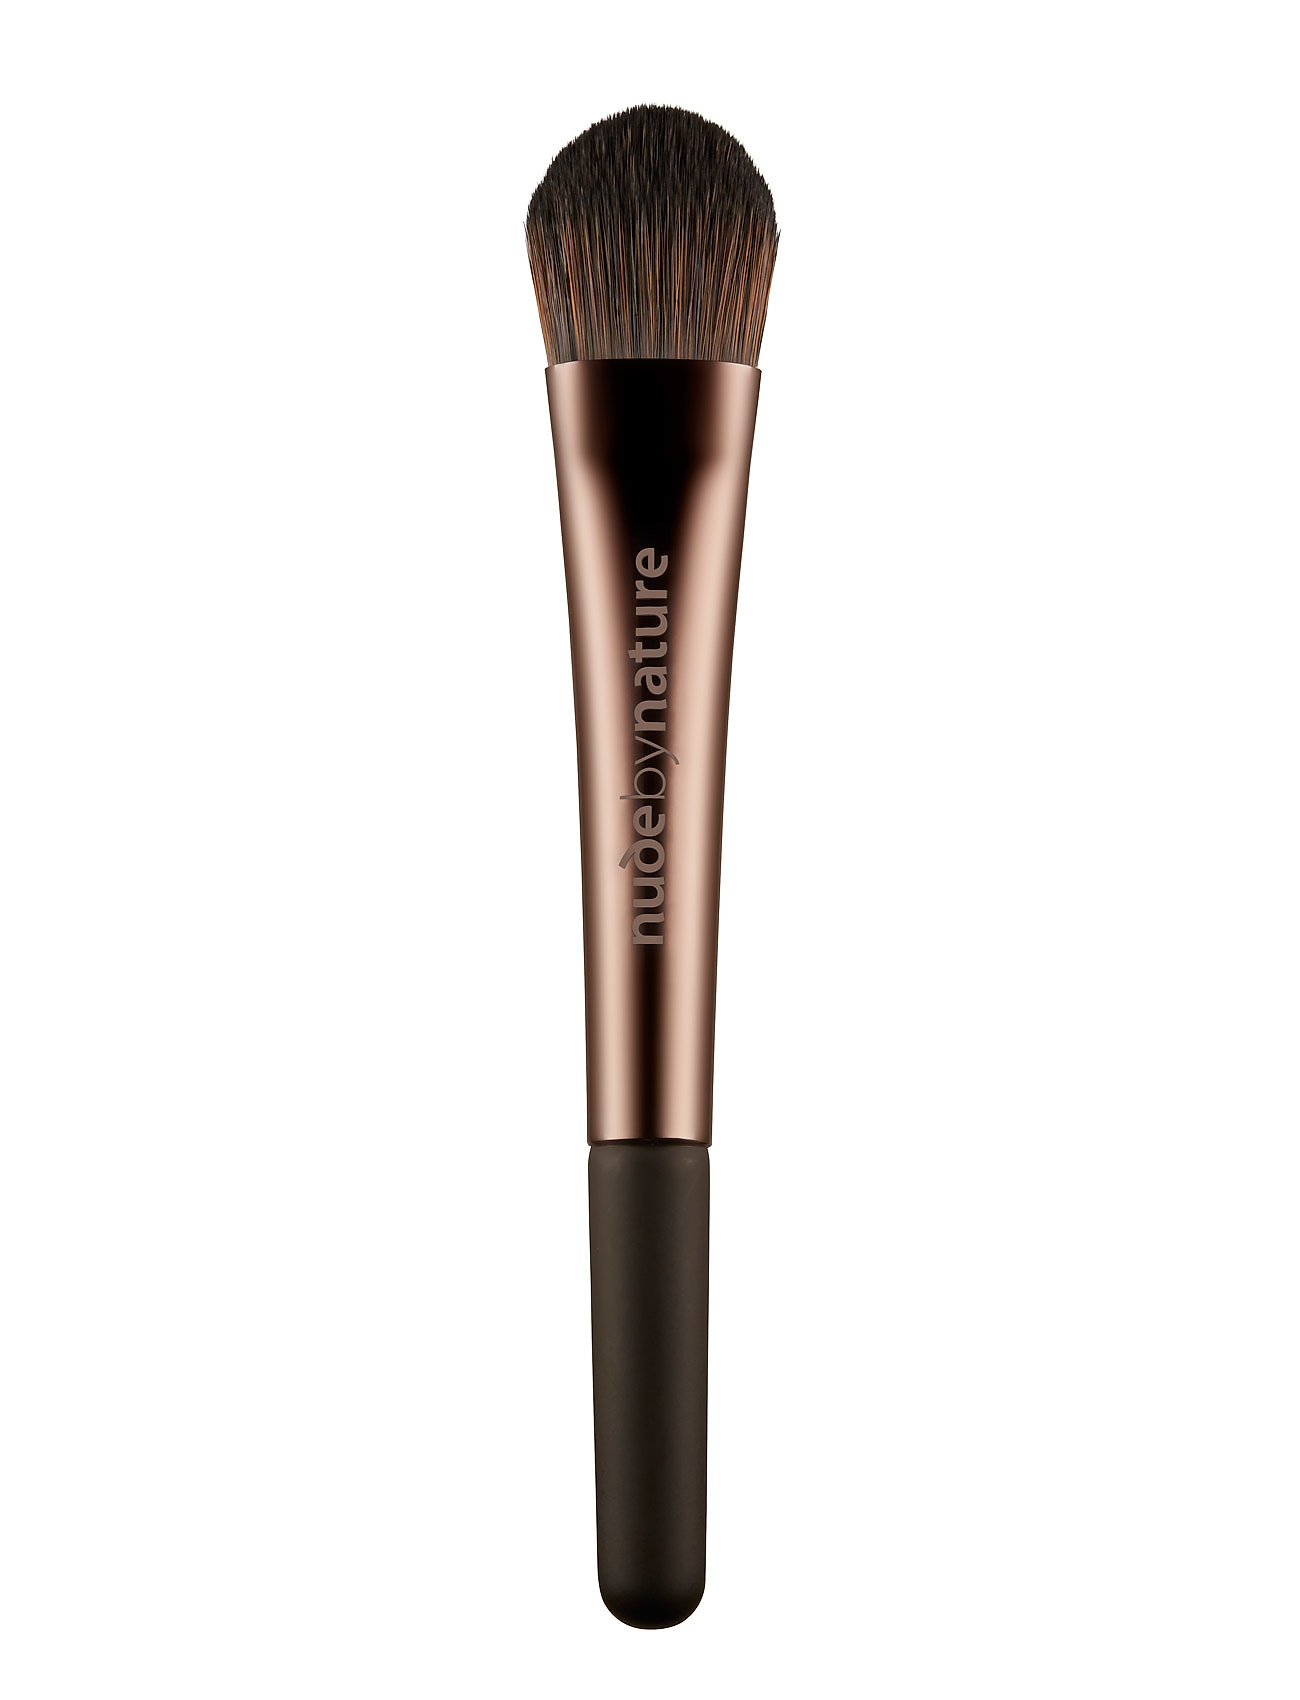 Image of Brushes 02 Liquid Foundation Brush Beauty WOMEN Makeup Makeup Brushes Face Brushes Nude Nude By Nature (2778815195)